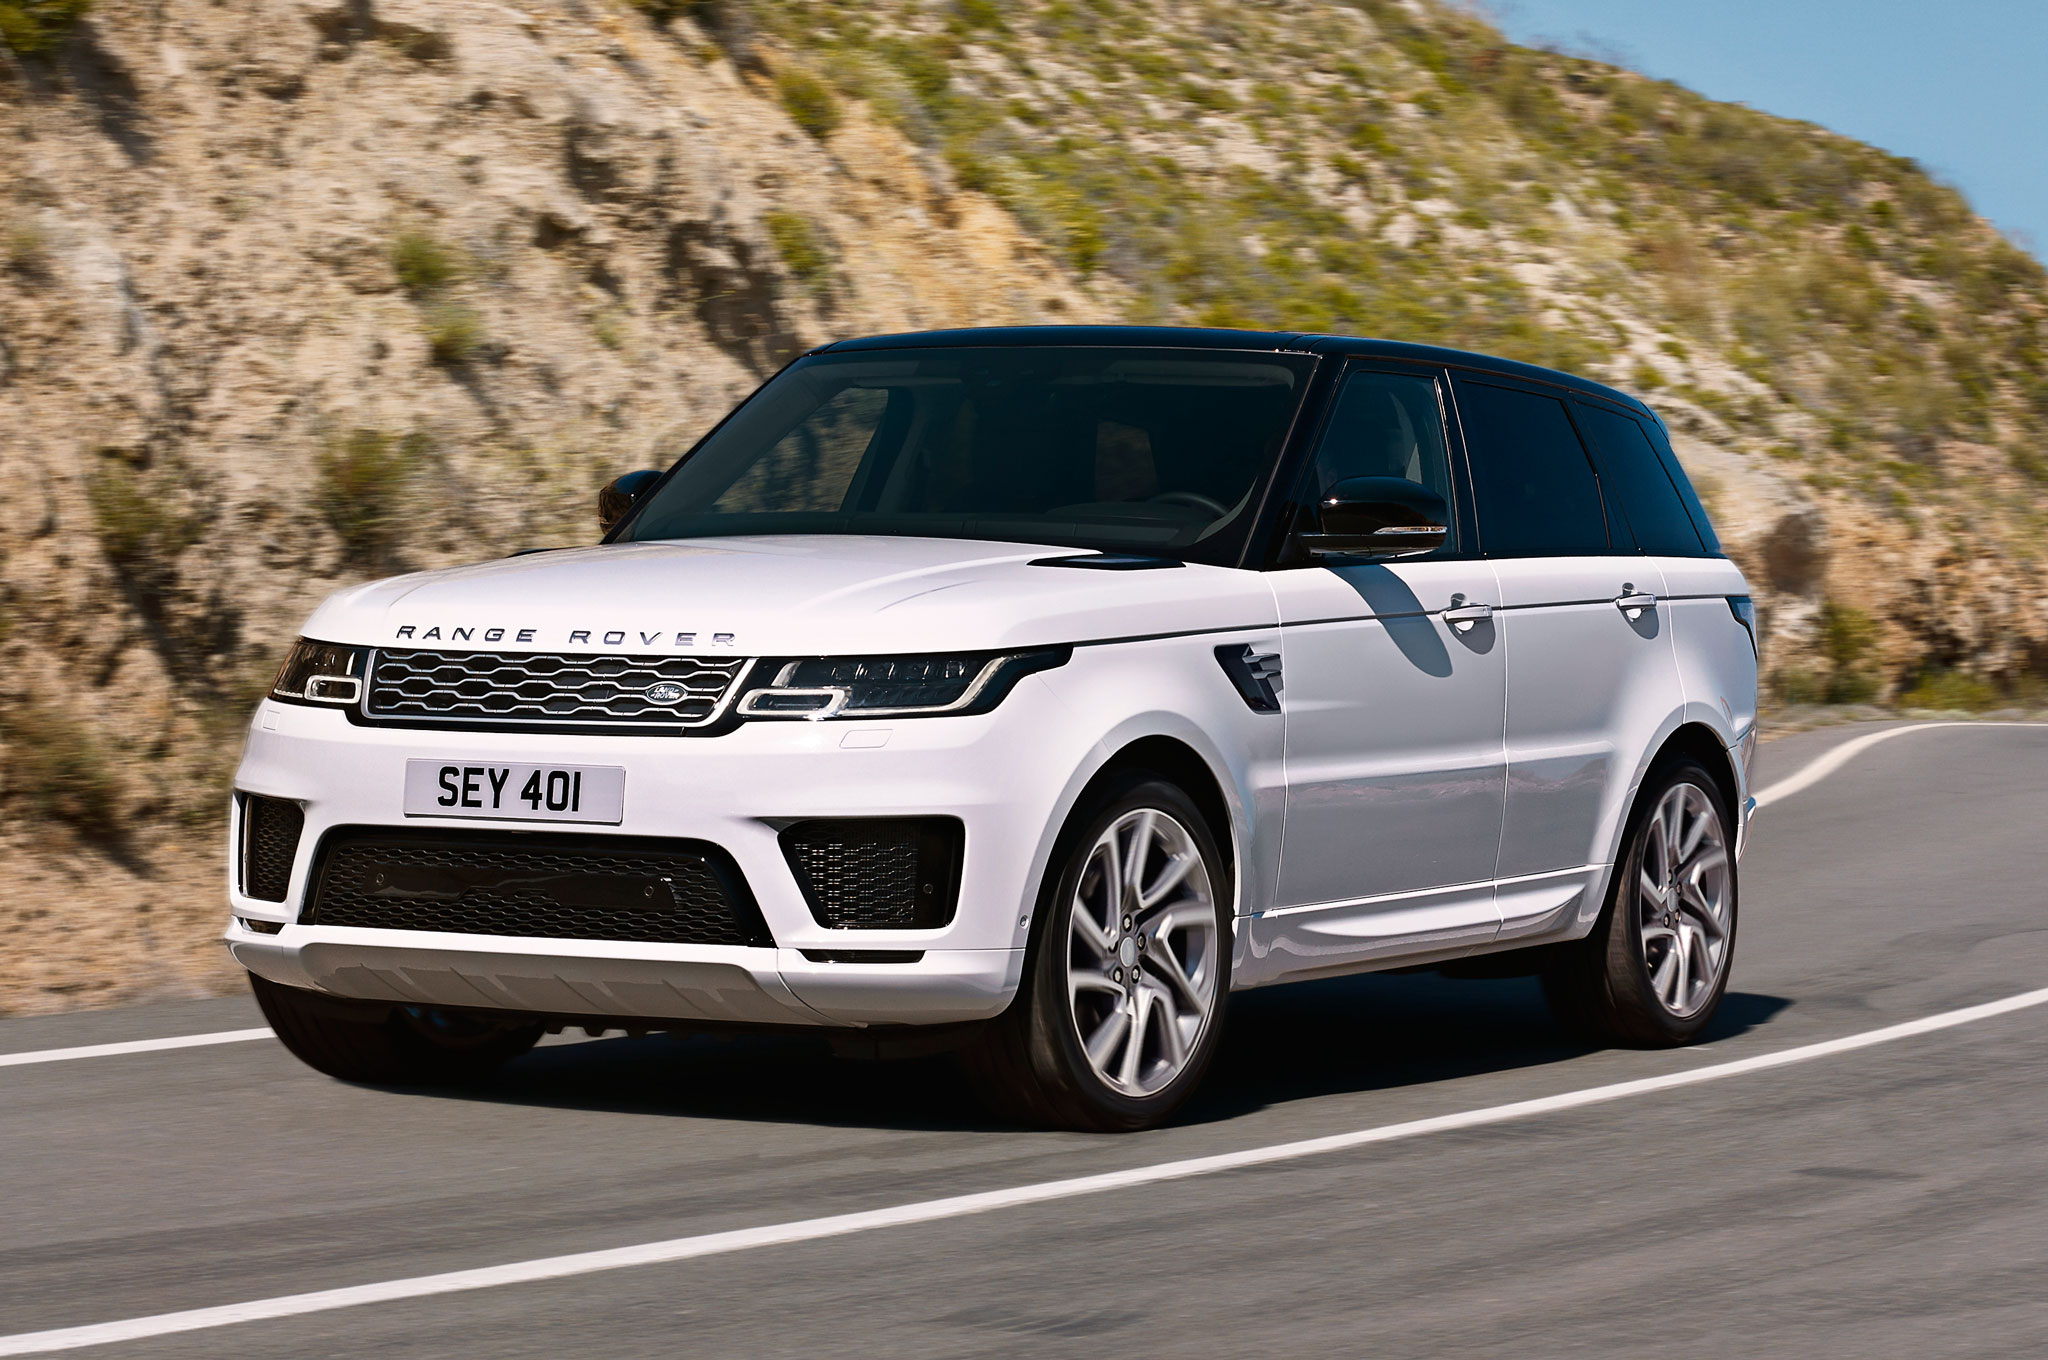 JLR Reveals 2019 Range Rover Sport Plug-In Hybrid Among Other Updates